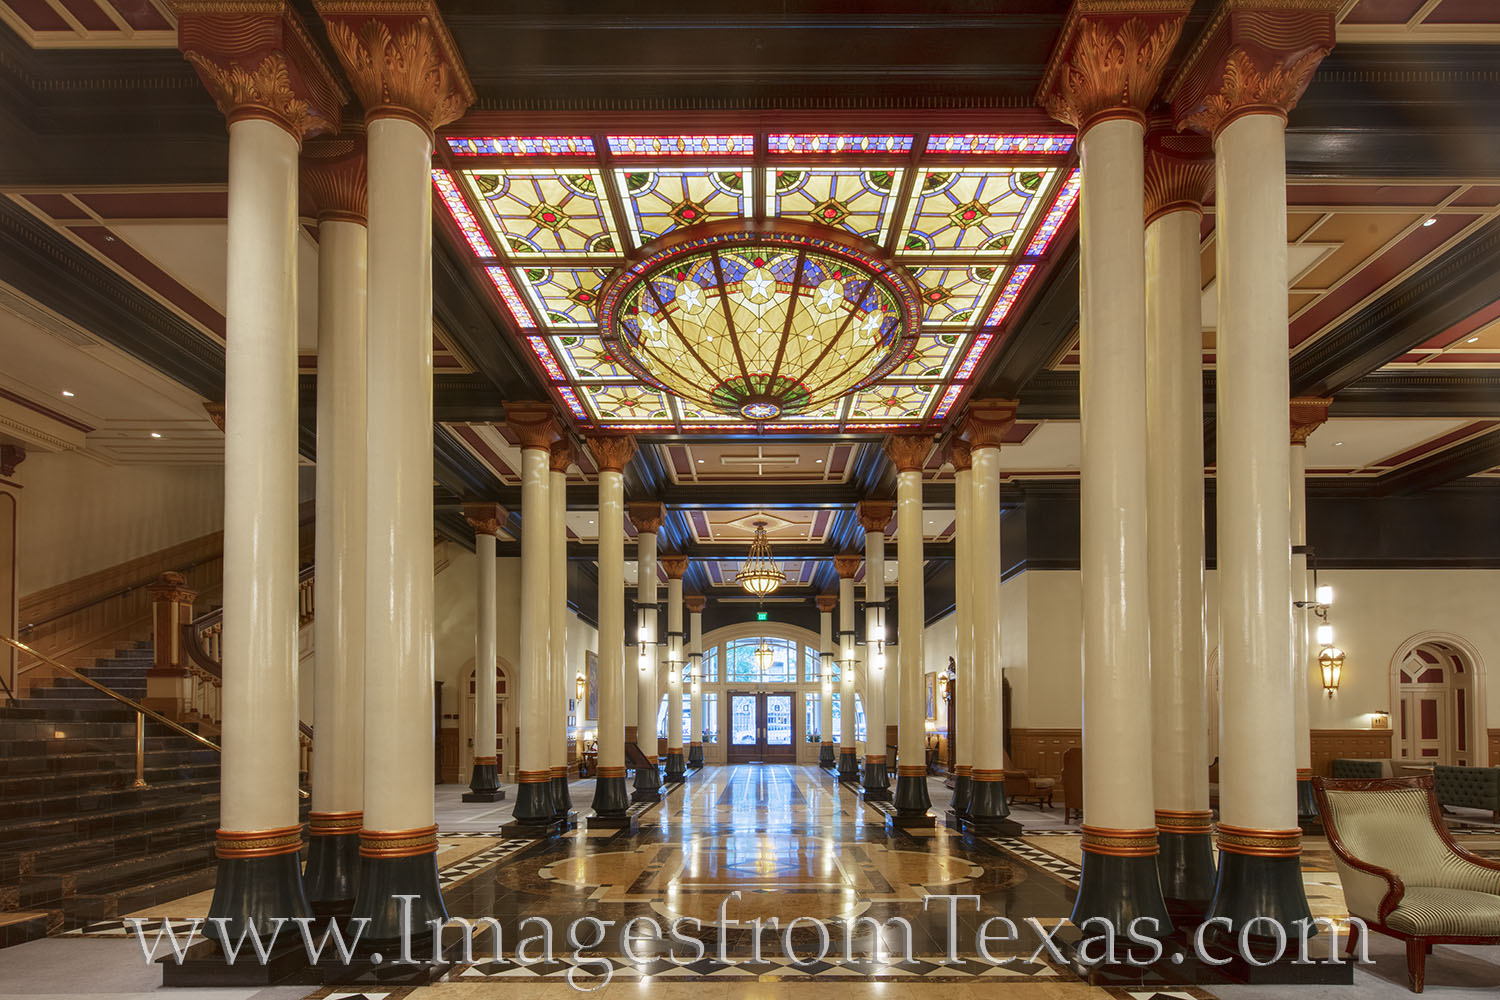 driskill hotel, 6th street, downtown austin, photo